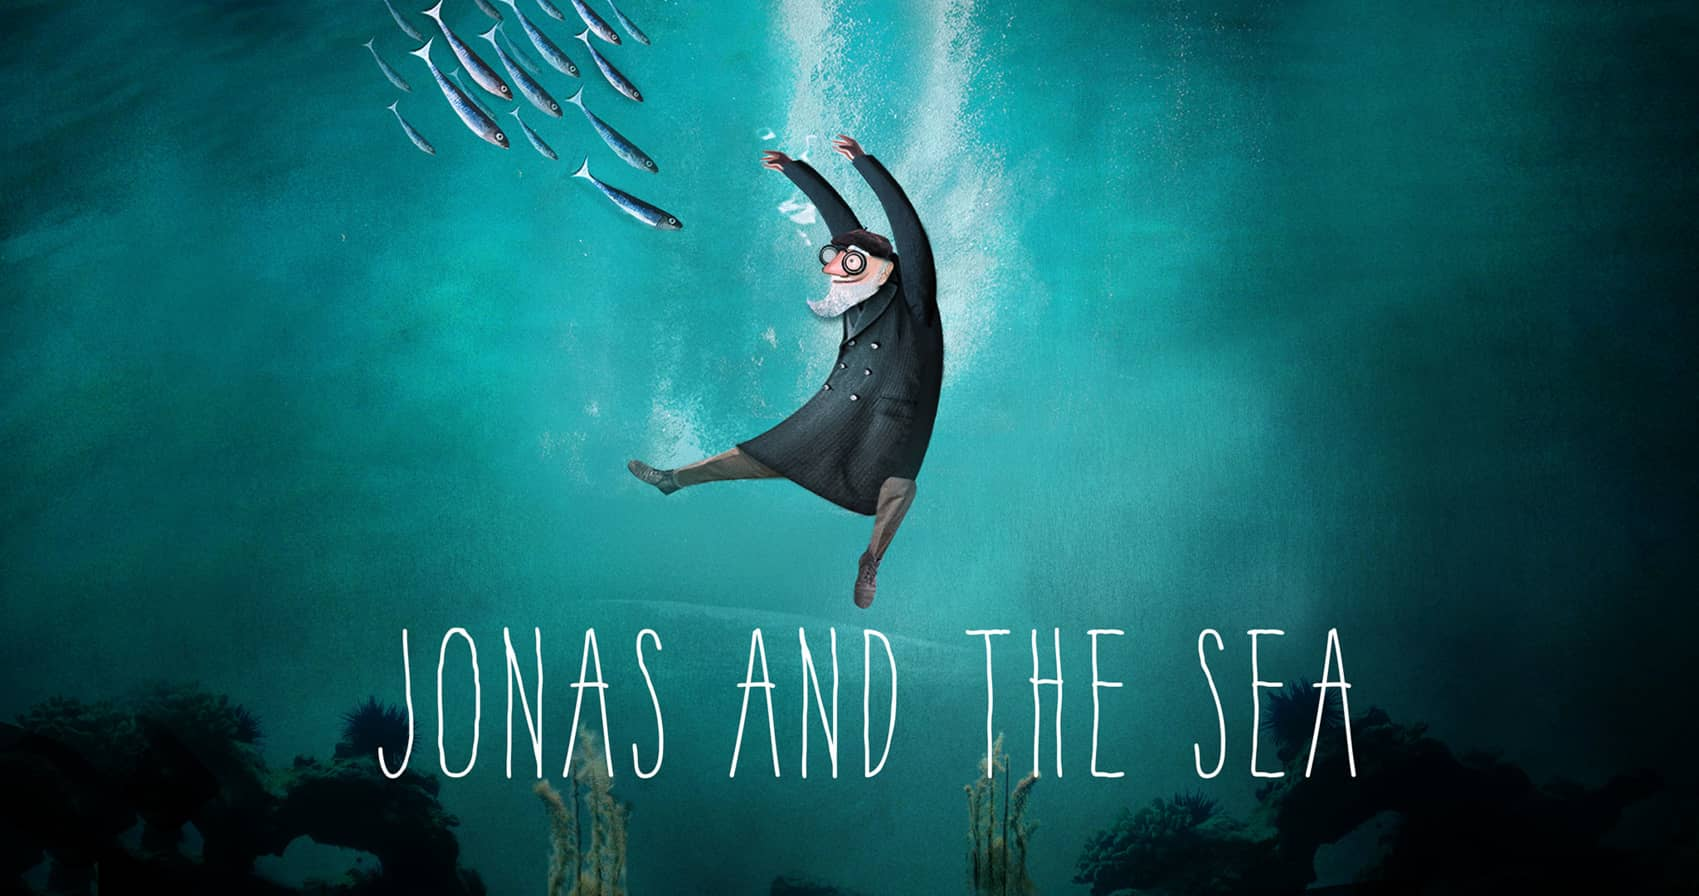 jonas_and_the_sea_loukini_2